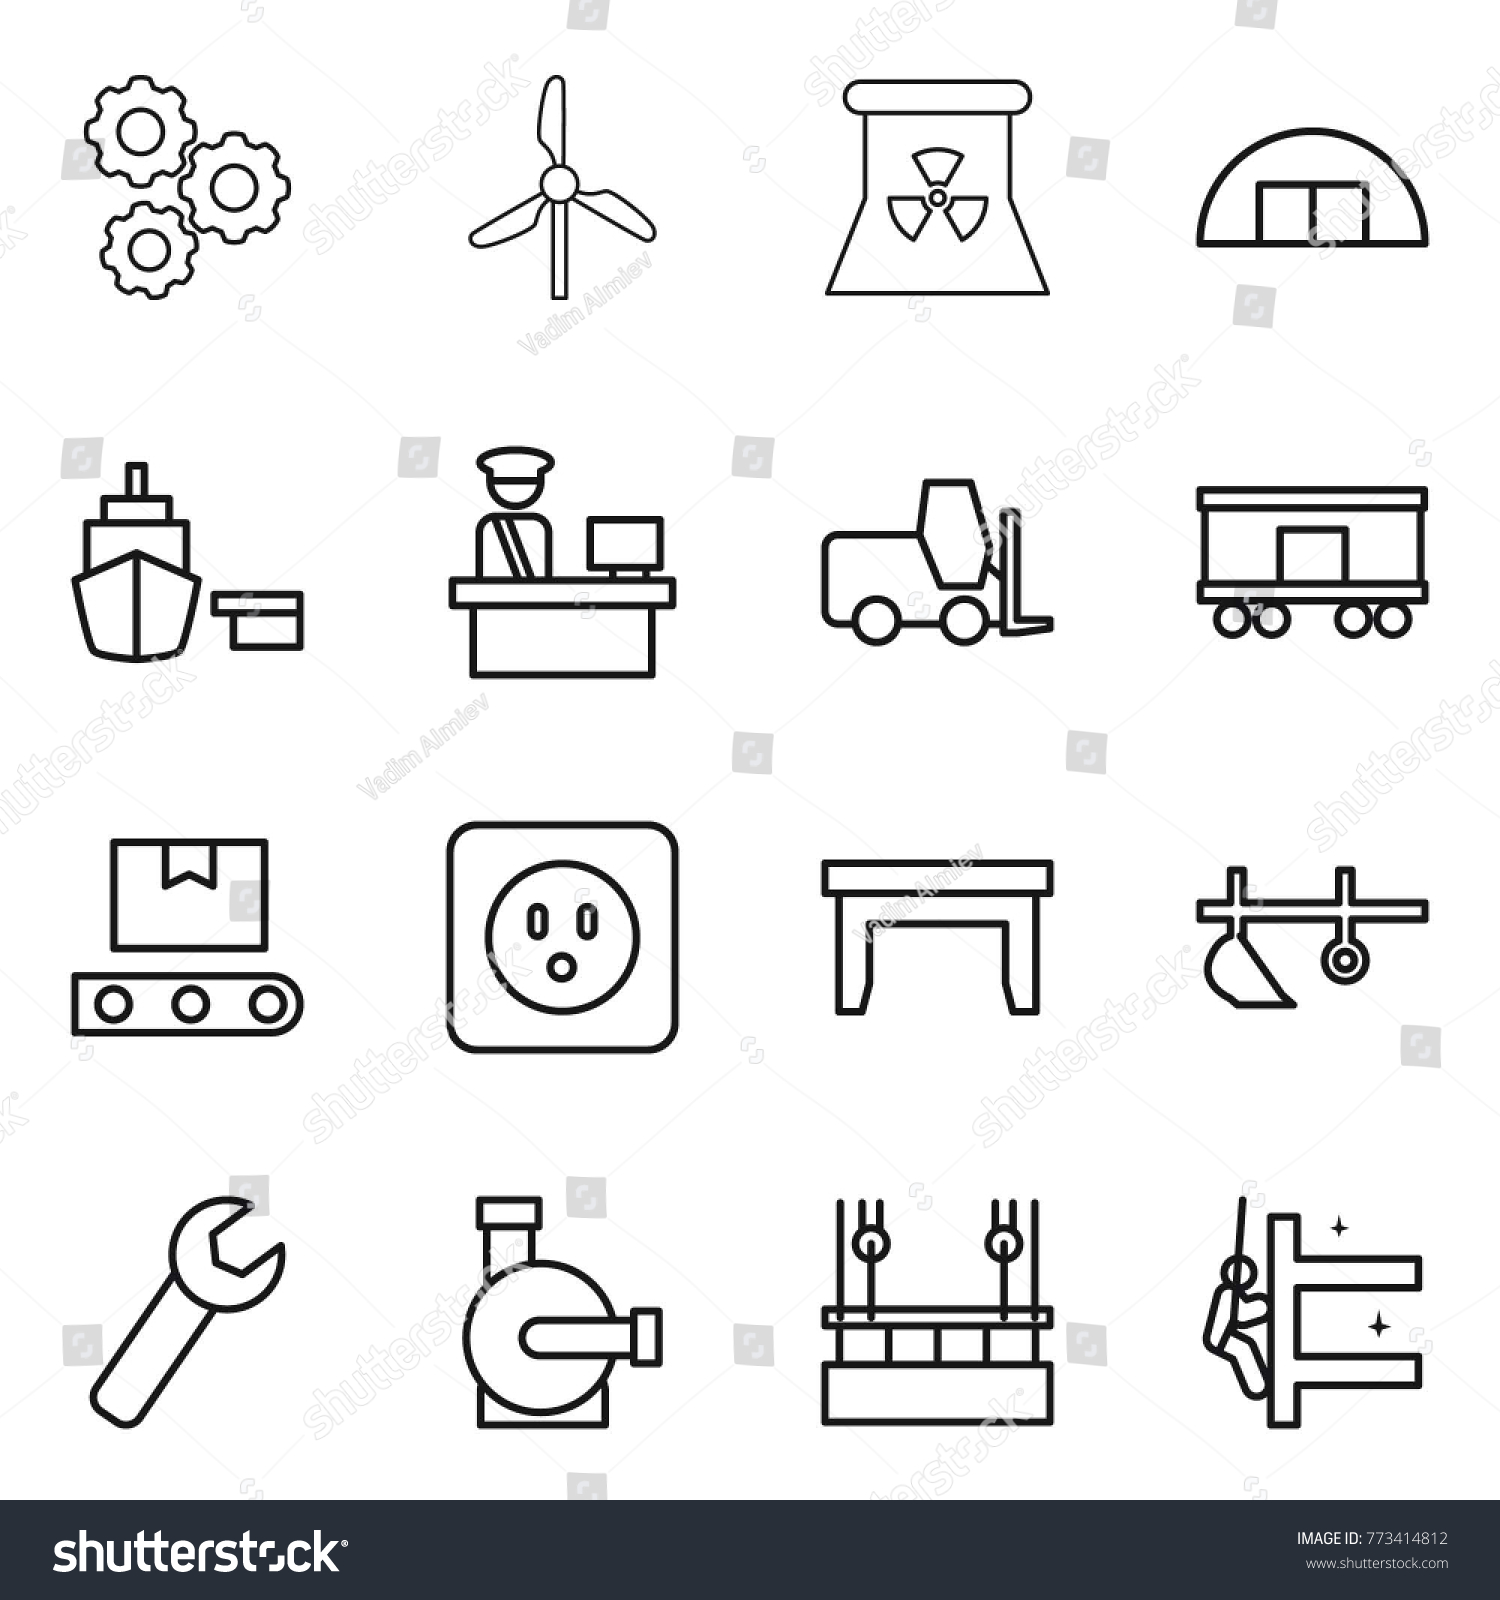 Thin line icon set gear windmill stock vector 773414812 shutterstock thin line icon set gear windmill nuclear power hangare port pooptronica Gallery